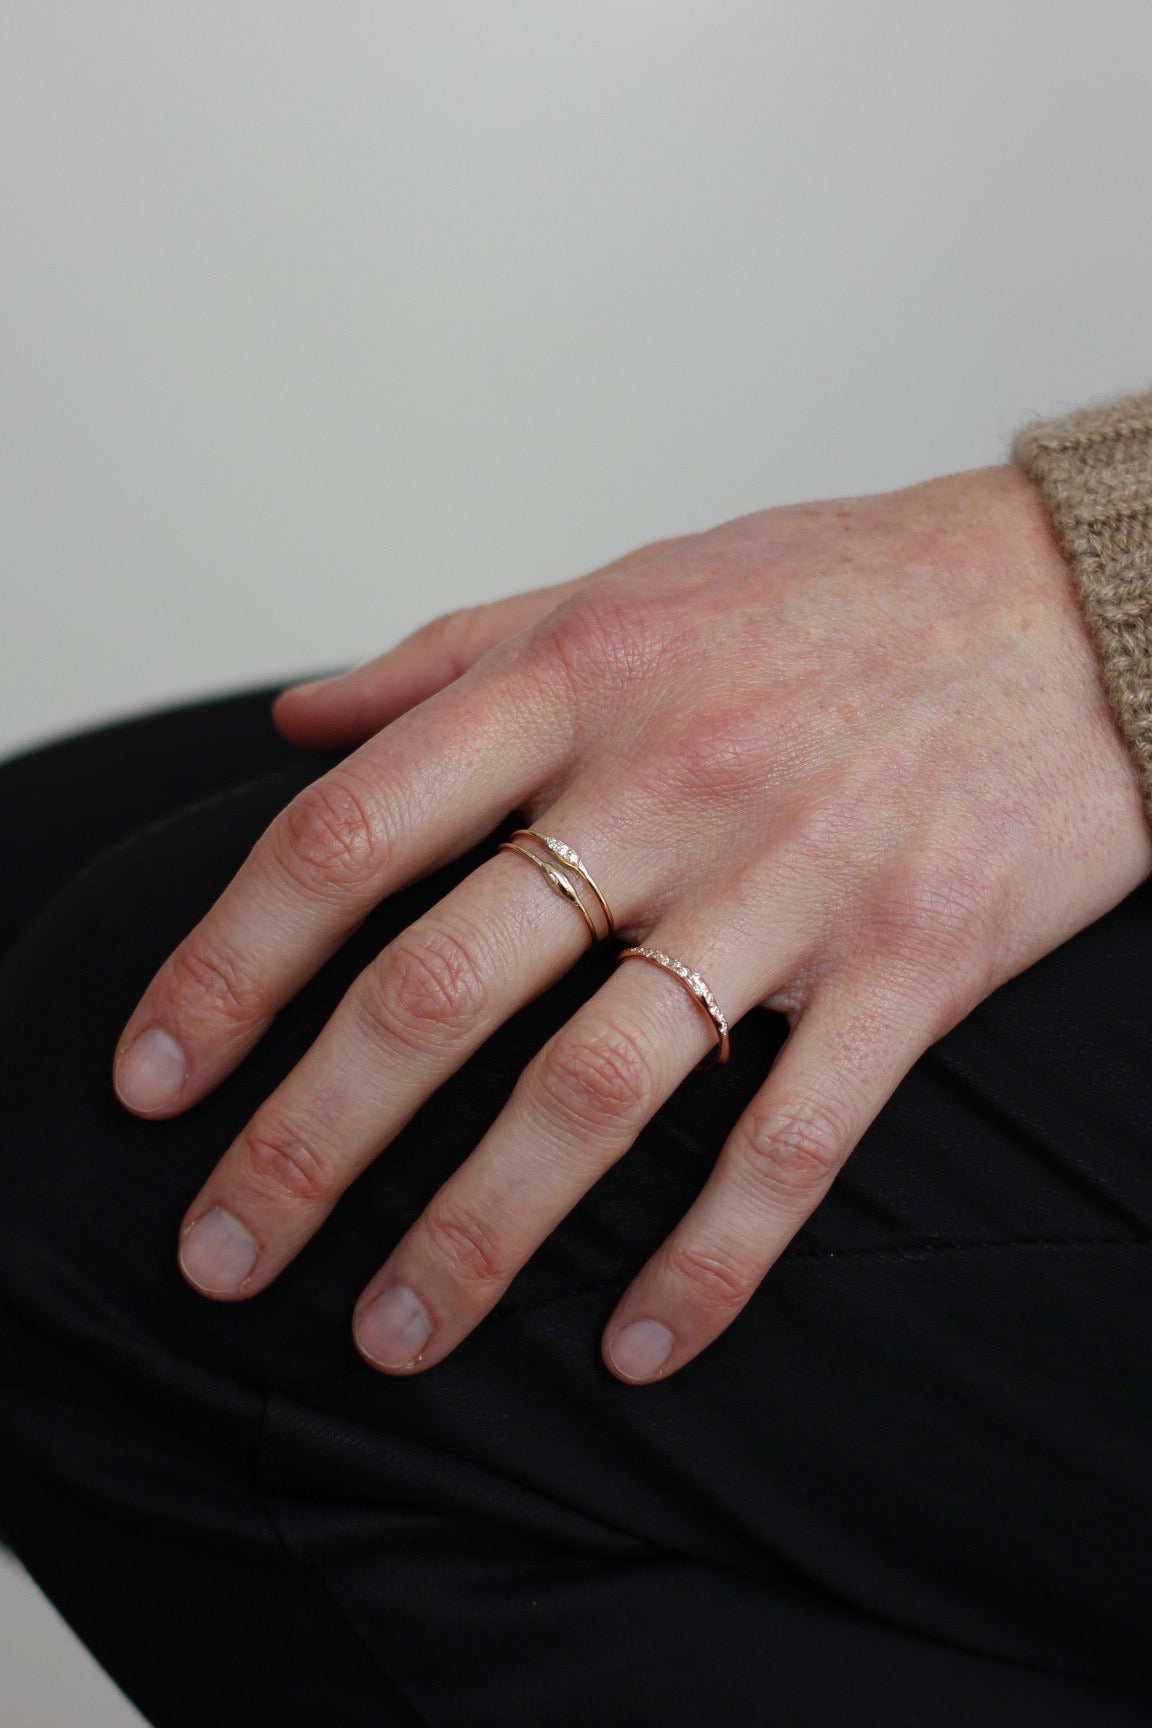 Hortense 14k gold ring